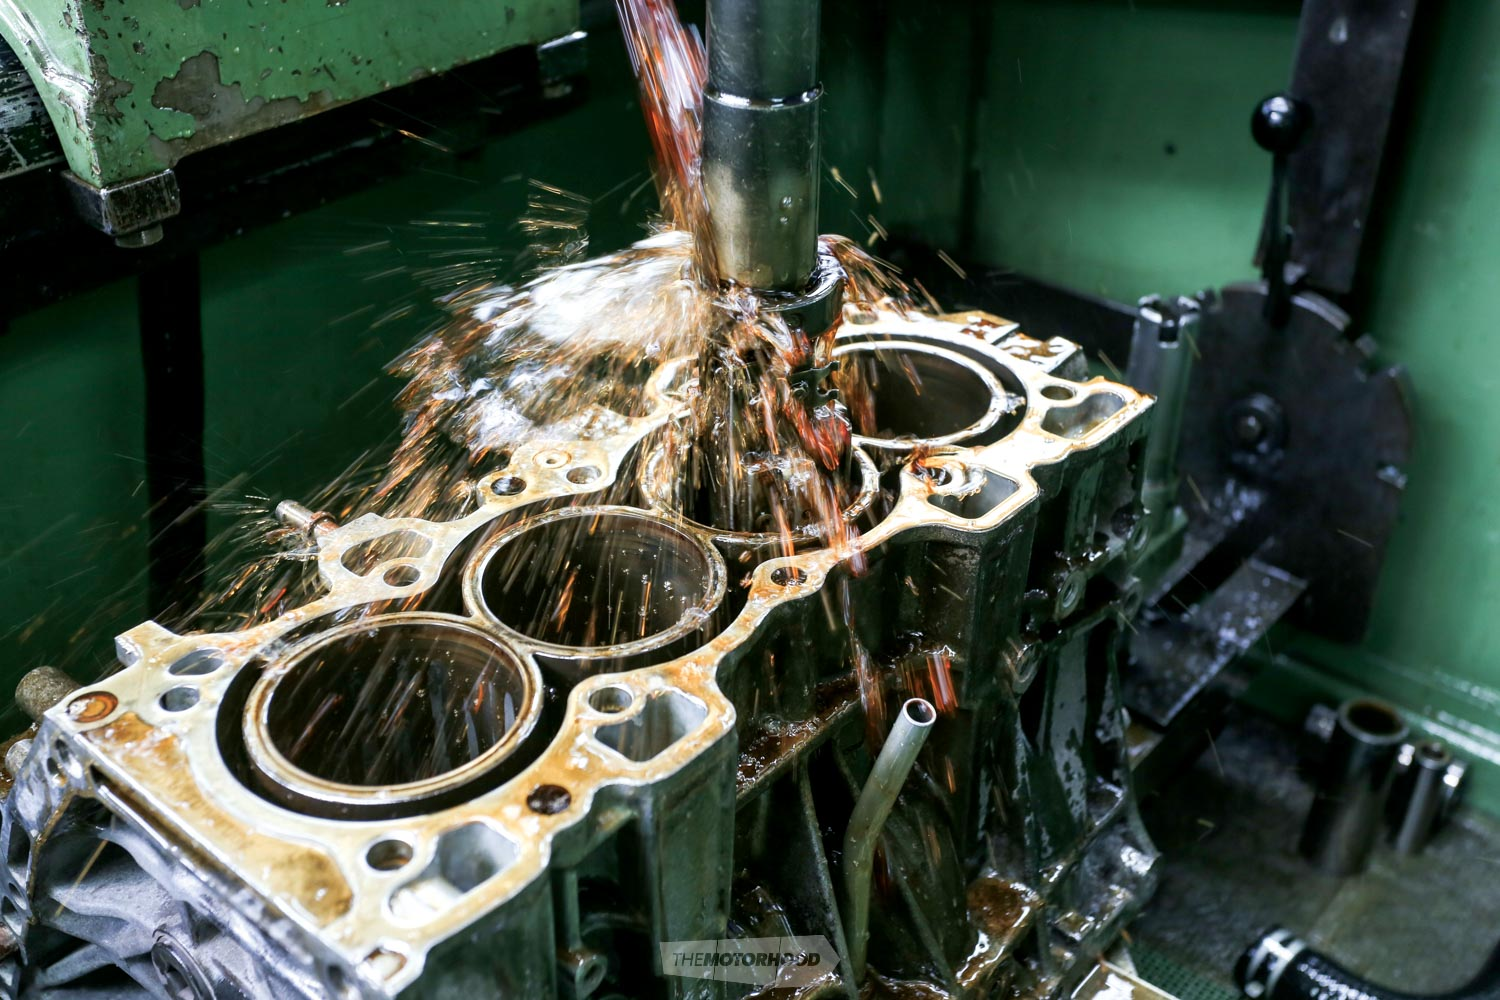 Internal procedure: intricacies of engine rebuilding — The